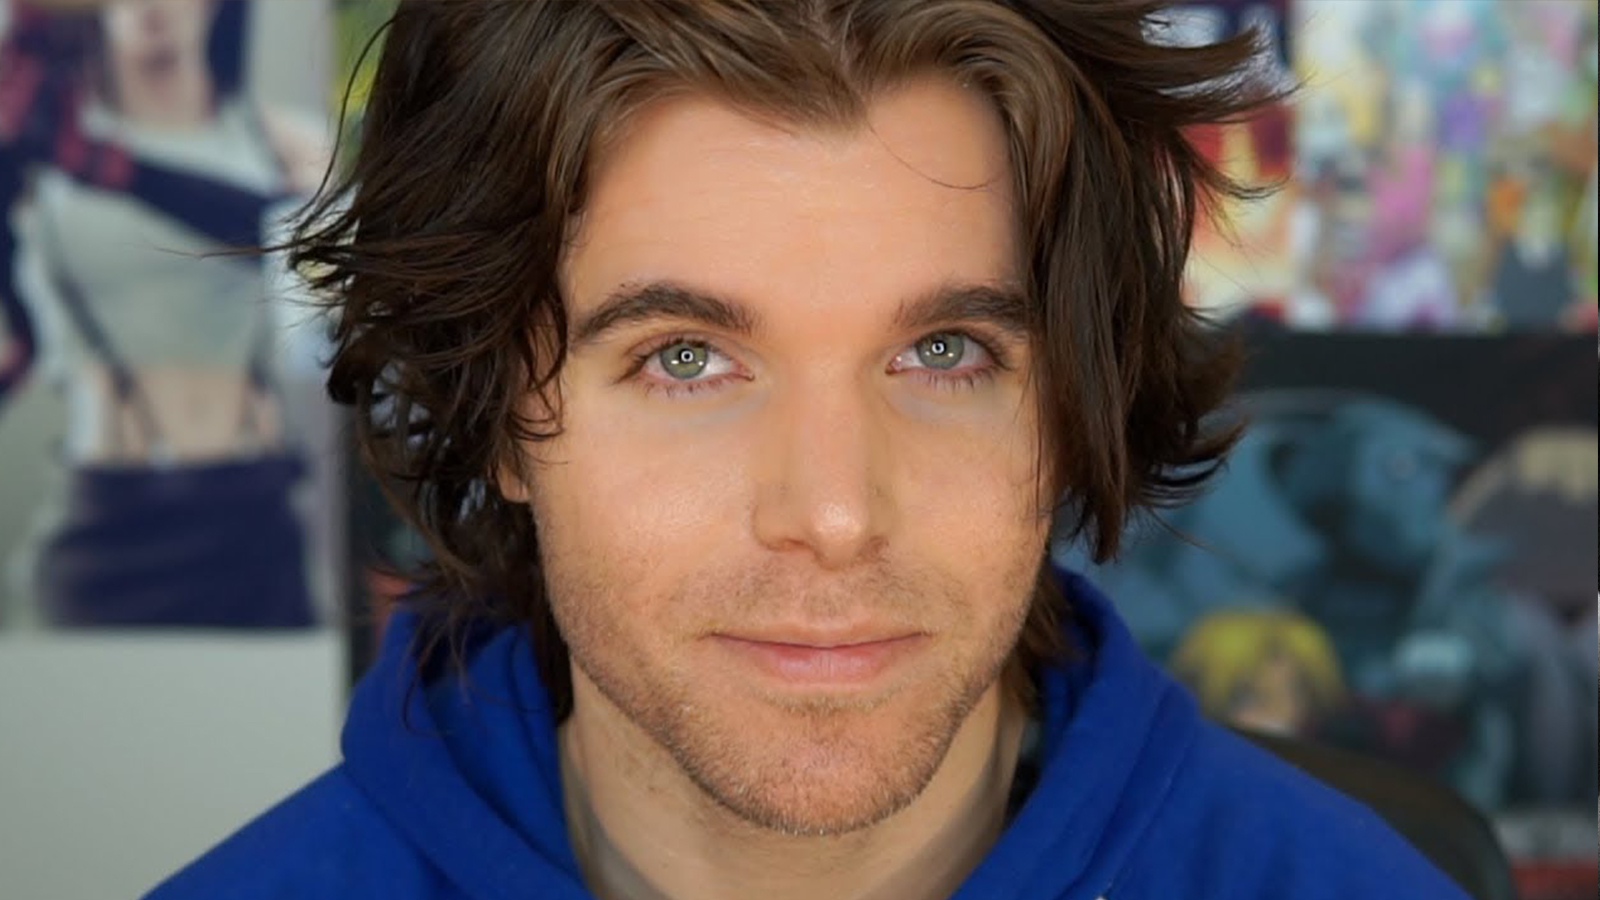 YouTube: Onision